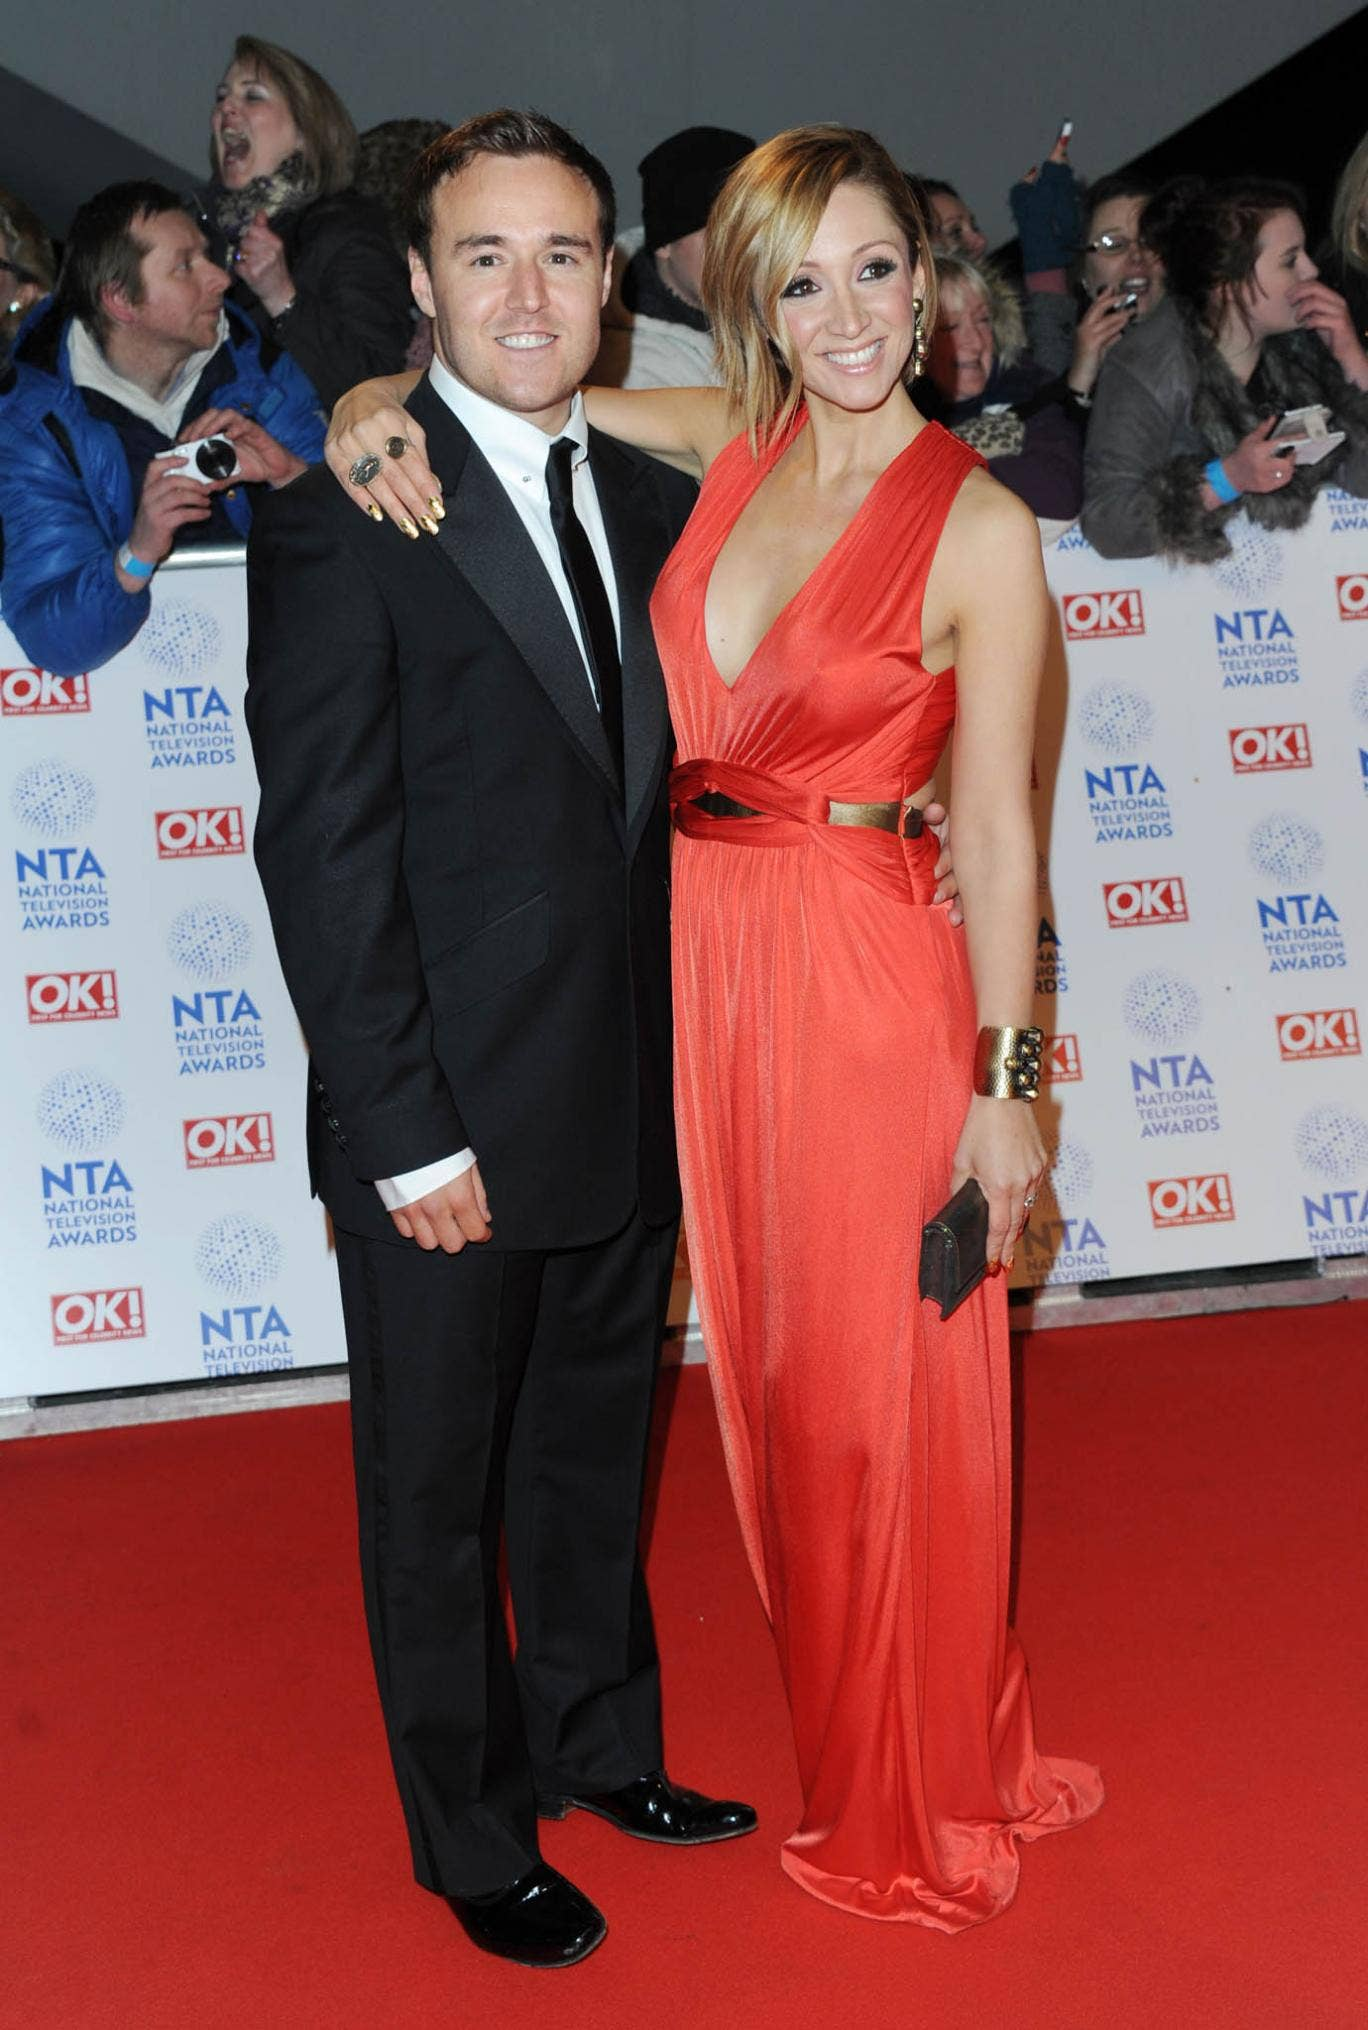 Alan Halsall and Lucy-Jo Hudson attend the National Television Awards at 02 Arena on January 23, 2013 in London